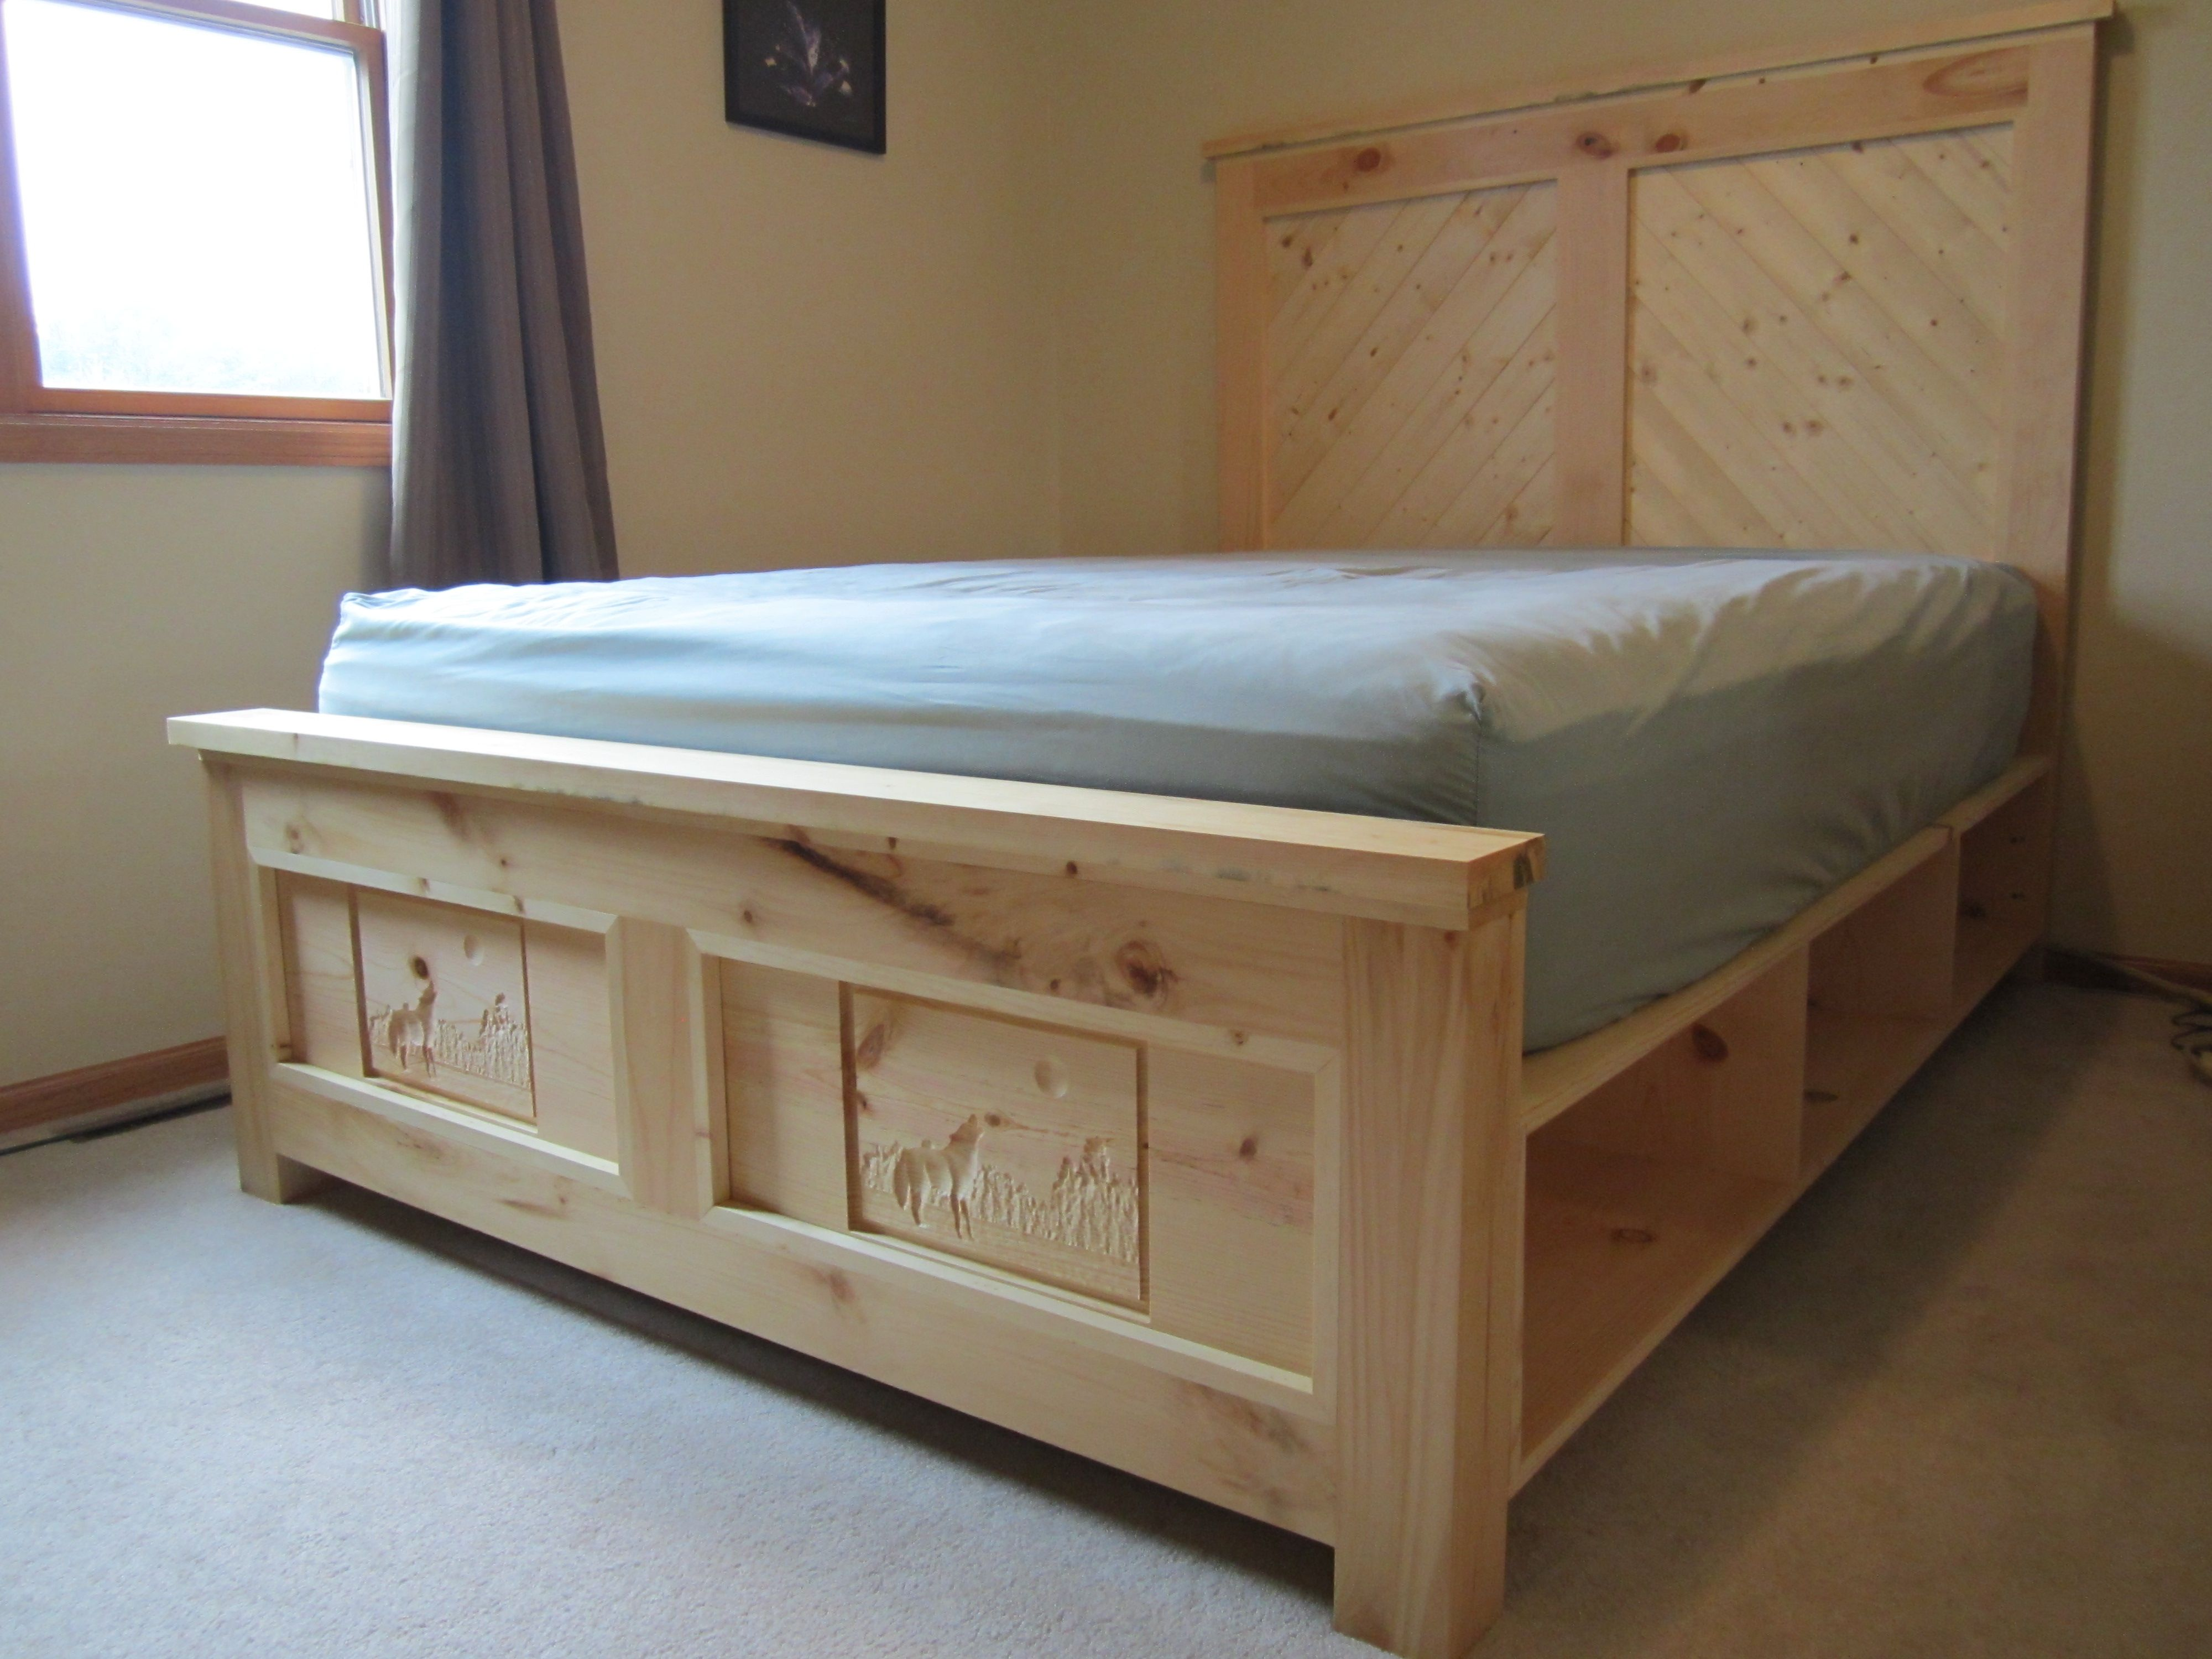 Northern wisconsin white pine bed and dresser do it yourself home northern wisconsin white pine bed and dresser do it yourself home projects from ana white solutioingenieria Gallery